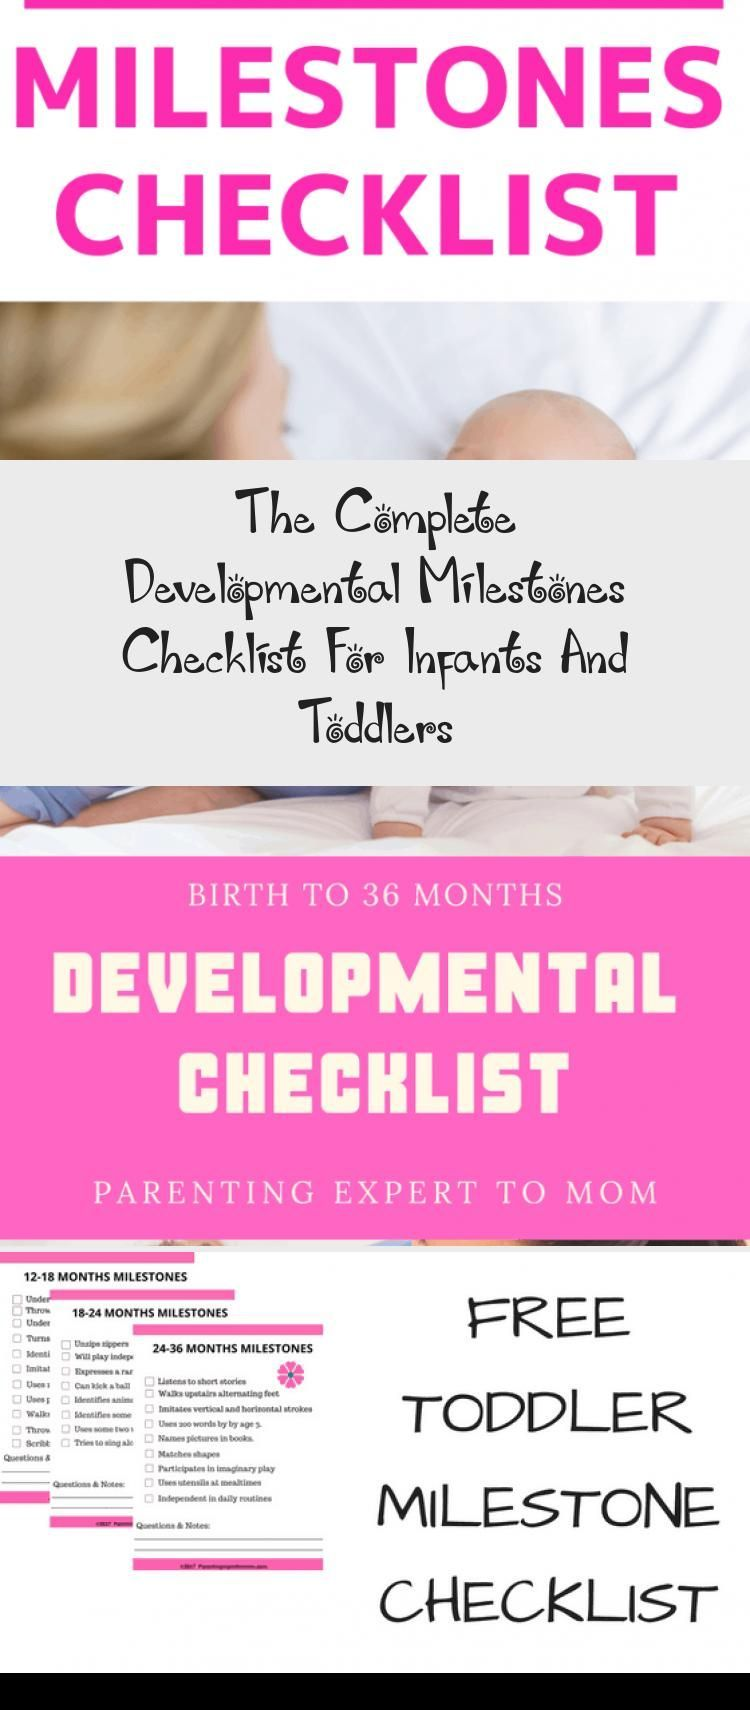 The Complete Developmental Milestones Checklist For Infants And Toddlers - health and diet fitness -...